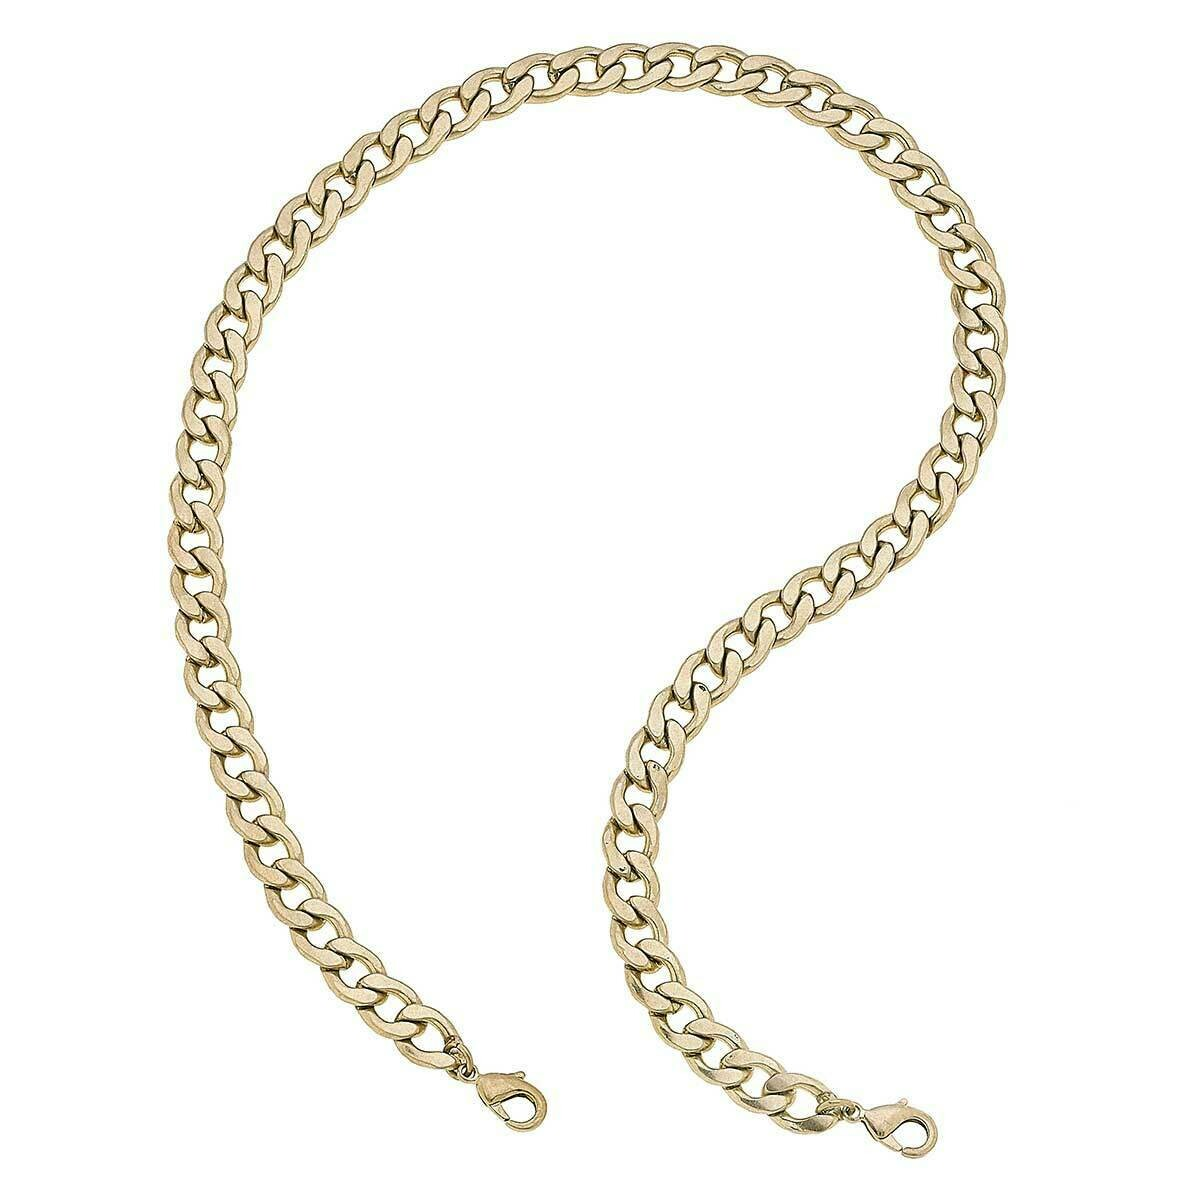 Chain Mask Necklace 22015M-WG-20